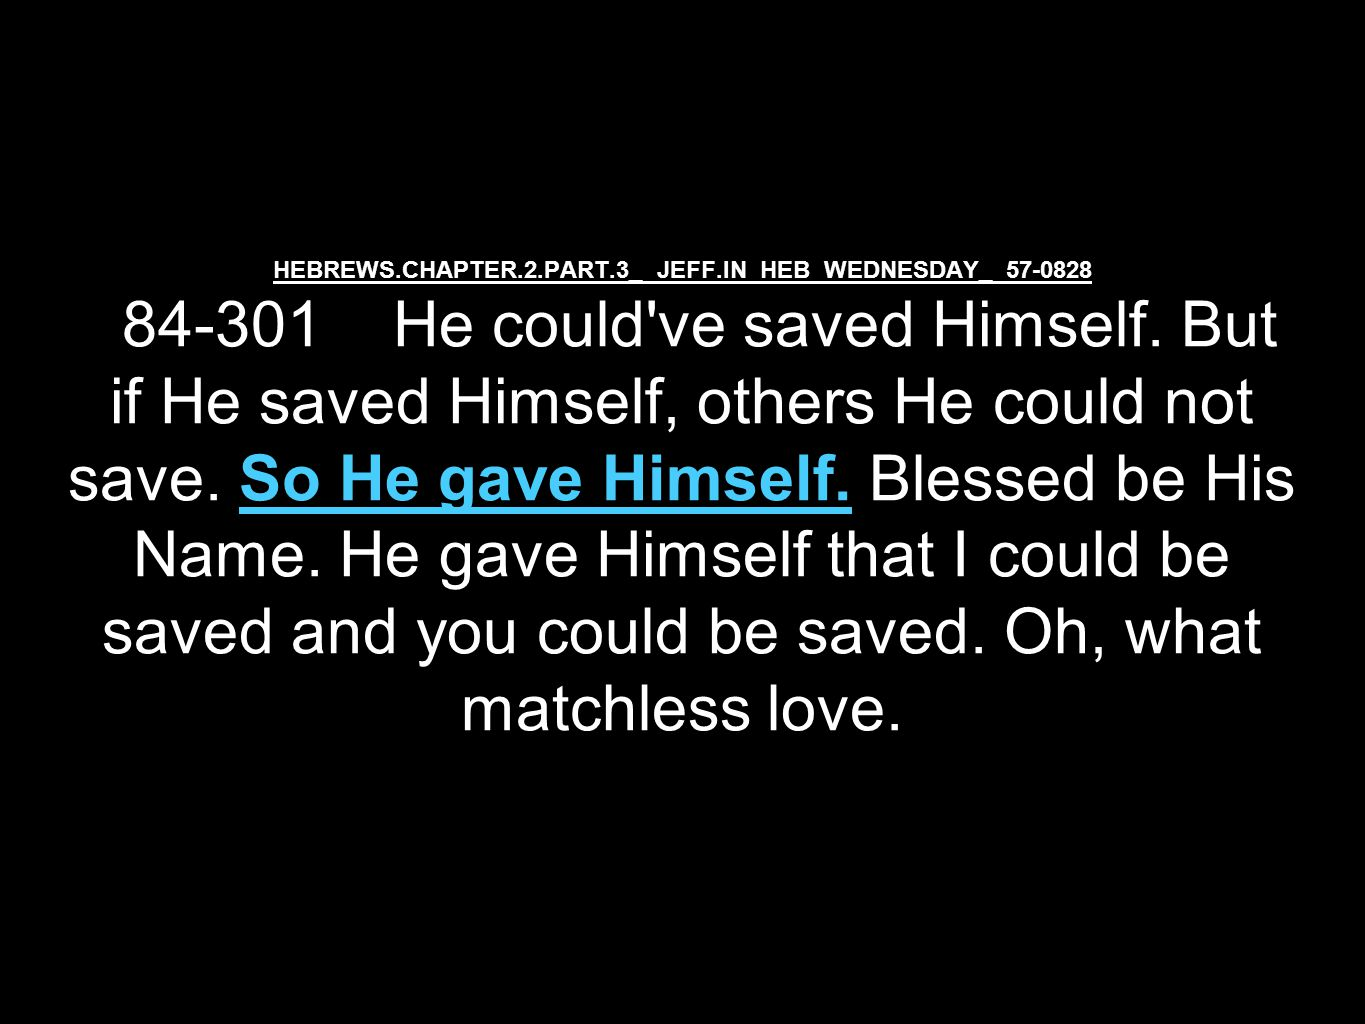 HEBREWS.CHAPTER.2.PART.3_ JEFF.IN HEB WEDNESDAY_ 57-0828 84-301 He could ve saved Himself.